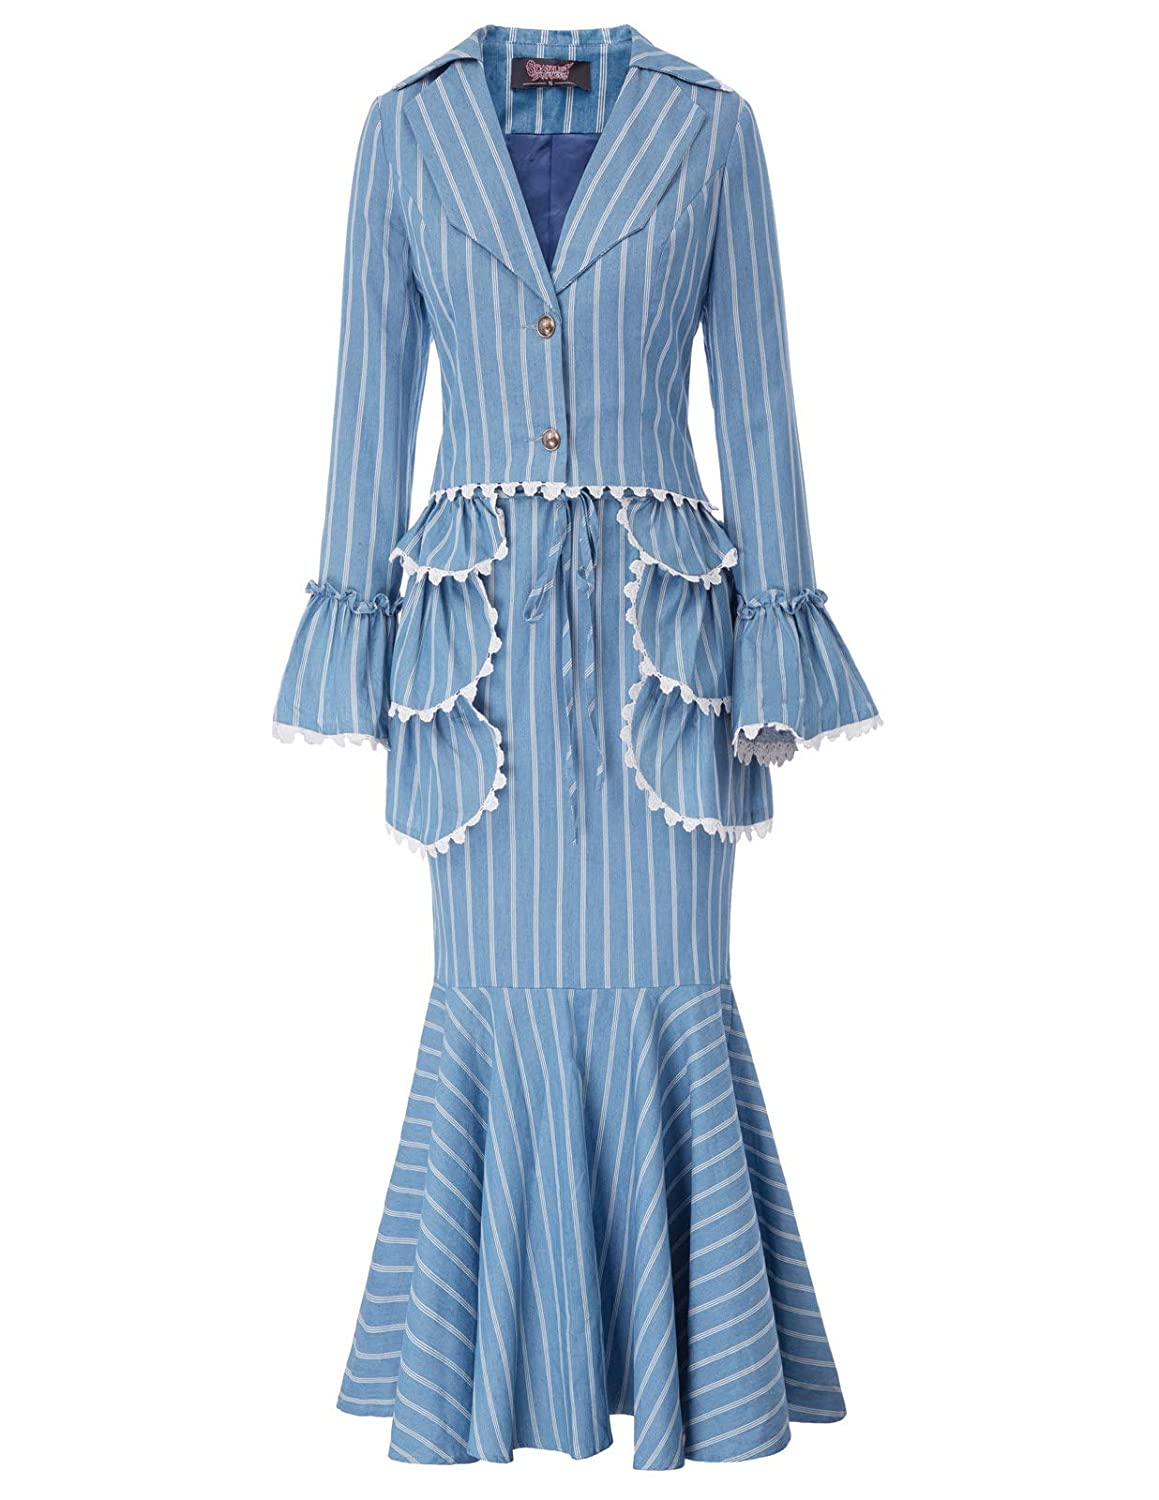 Steampunk Dresses | Women & Girl Costumes Women 3pcs Set Vintage Victorian Costume Edwardian Suit Coat+Skirt+Apron $59.99 AT vintagedancer.com